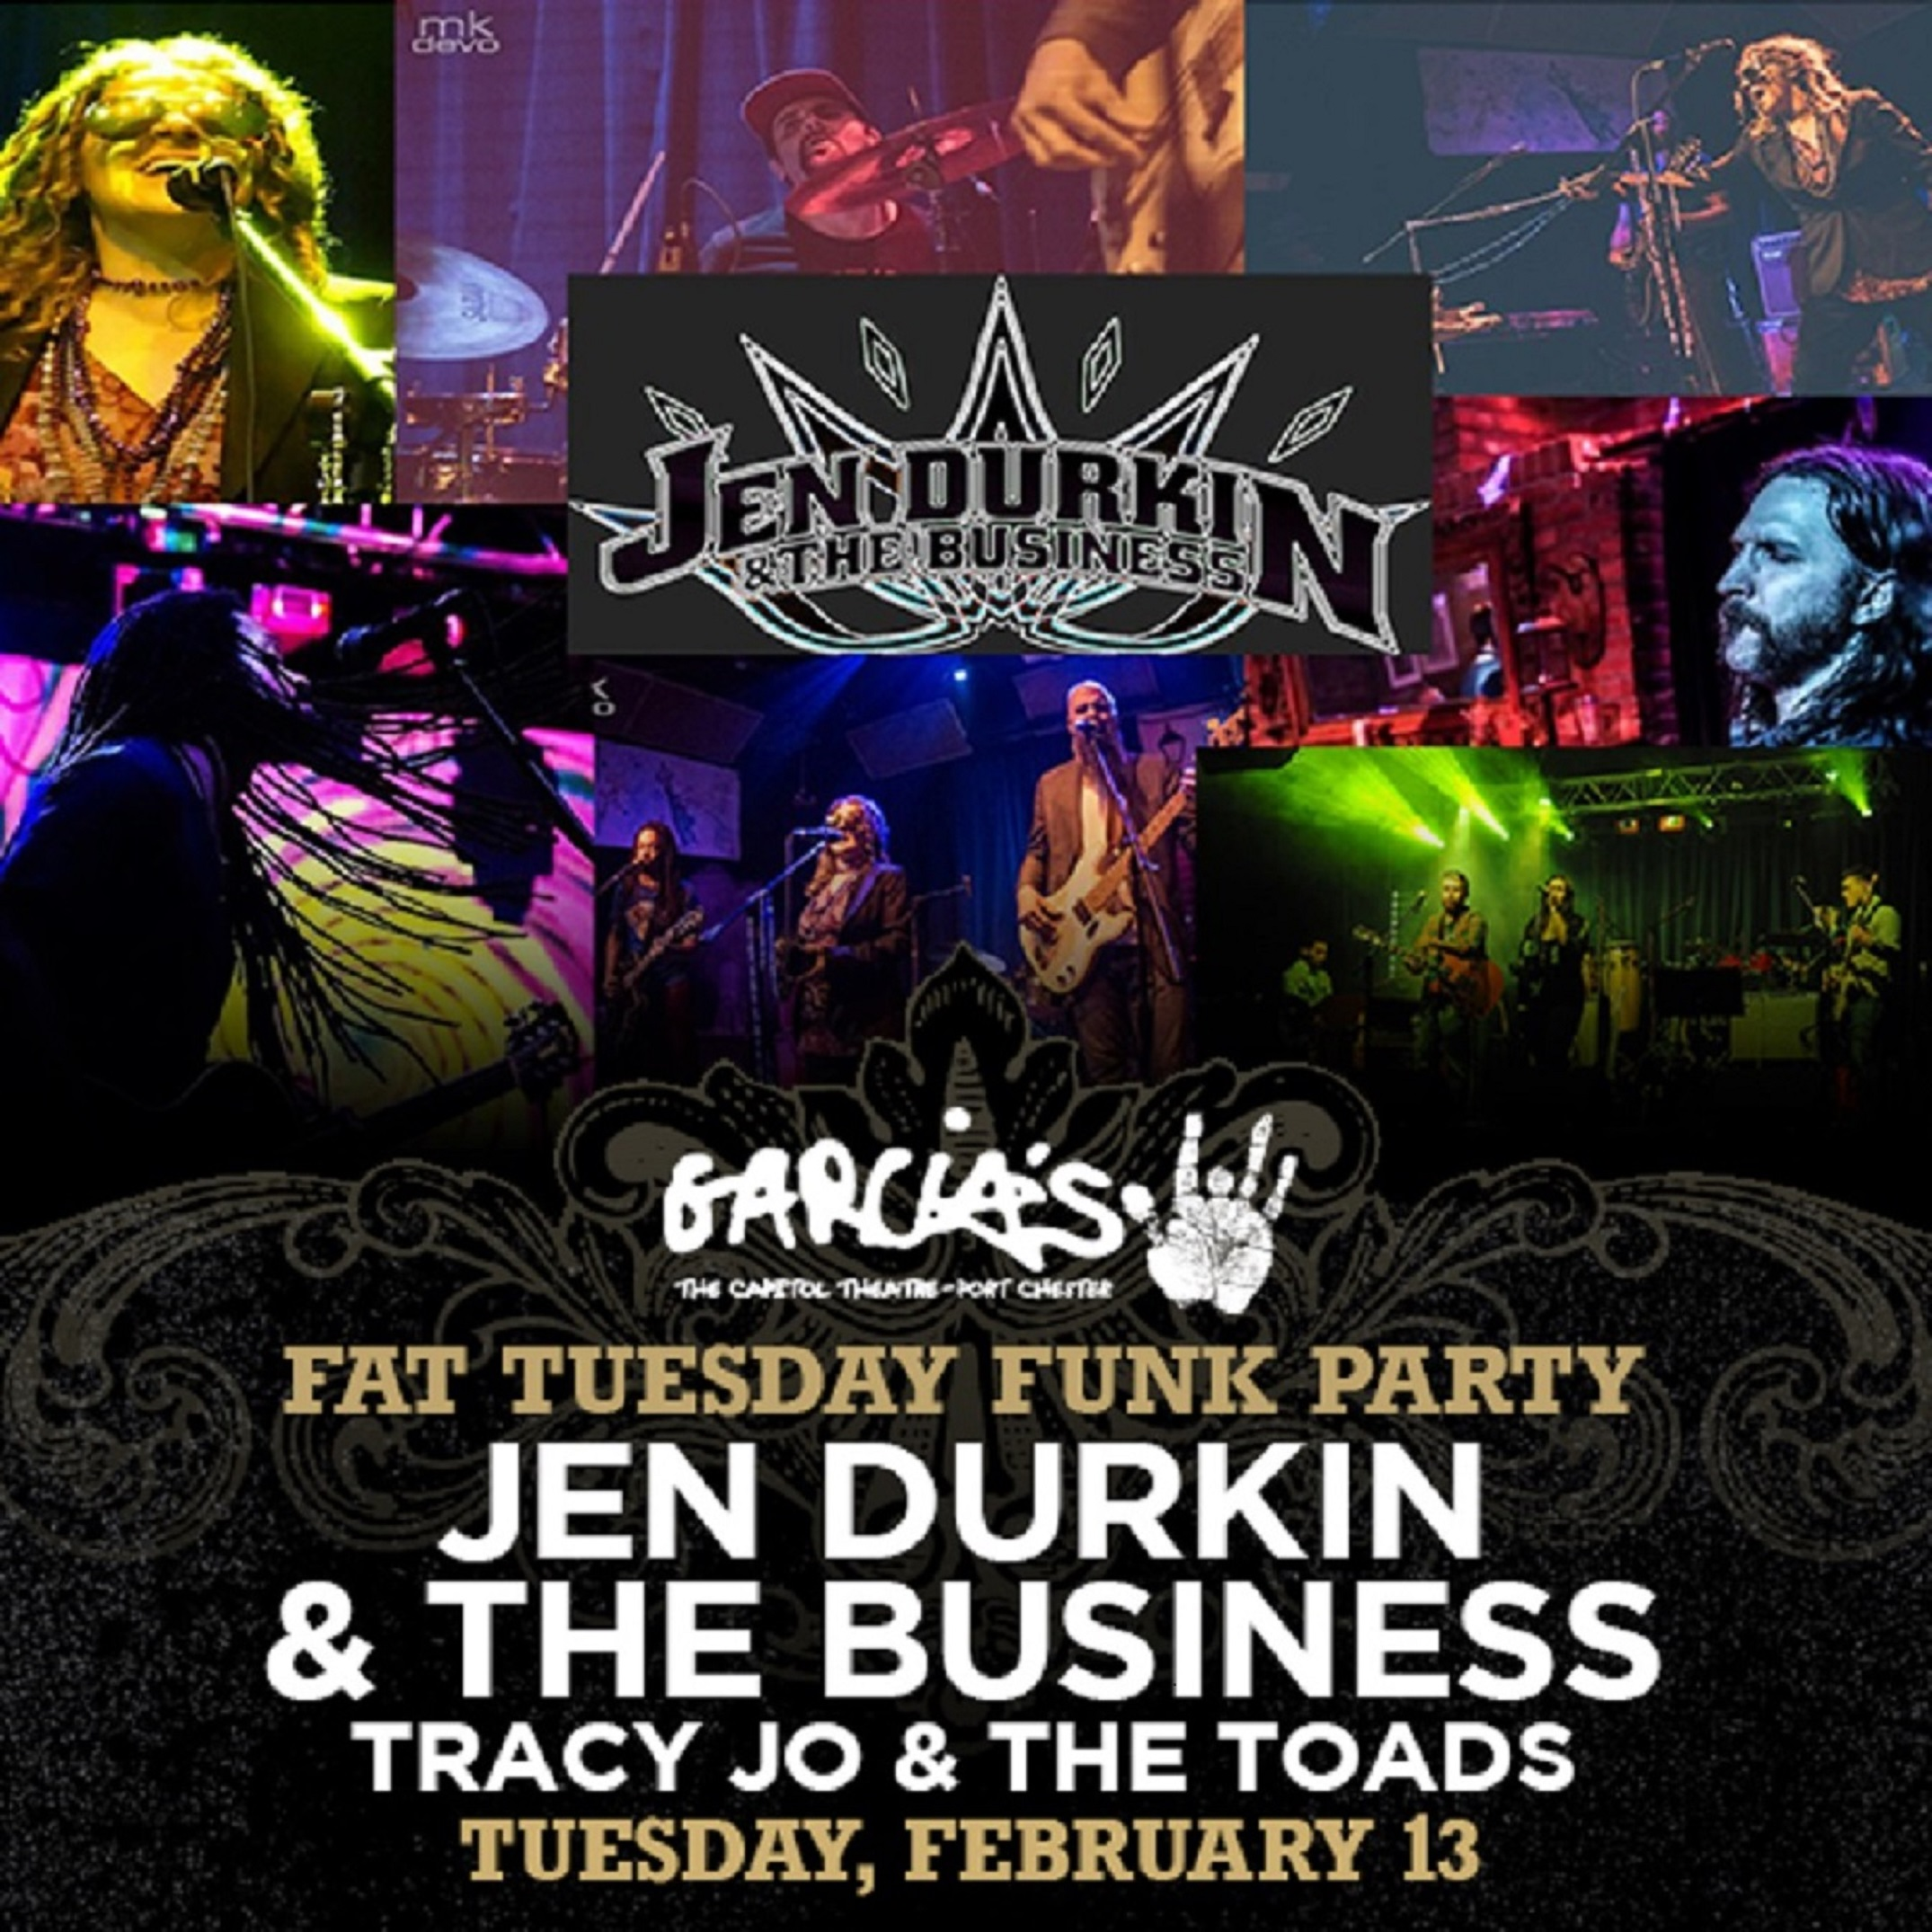 Fat Tuesday Mardi Gras Funk Party at Garcia's